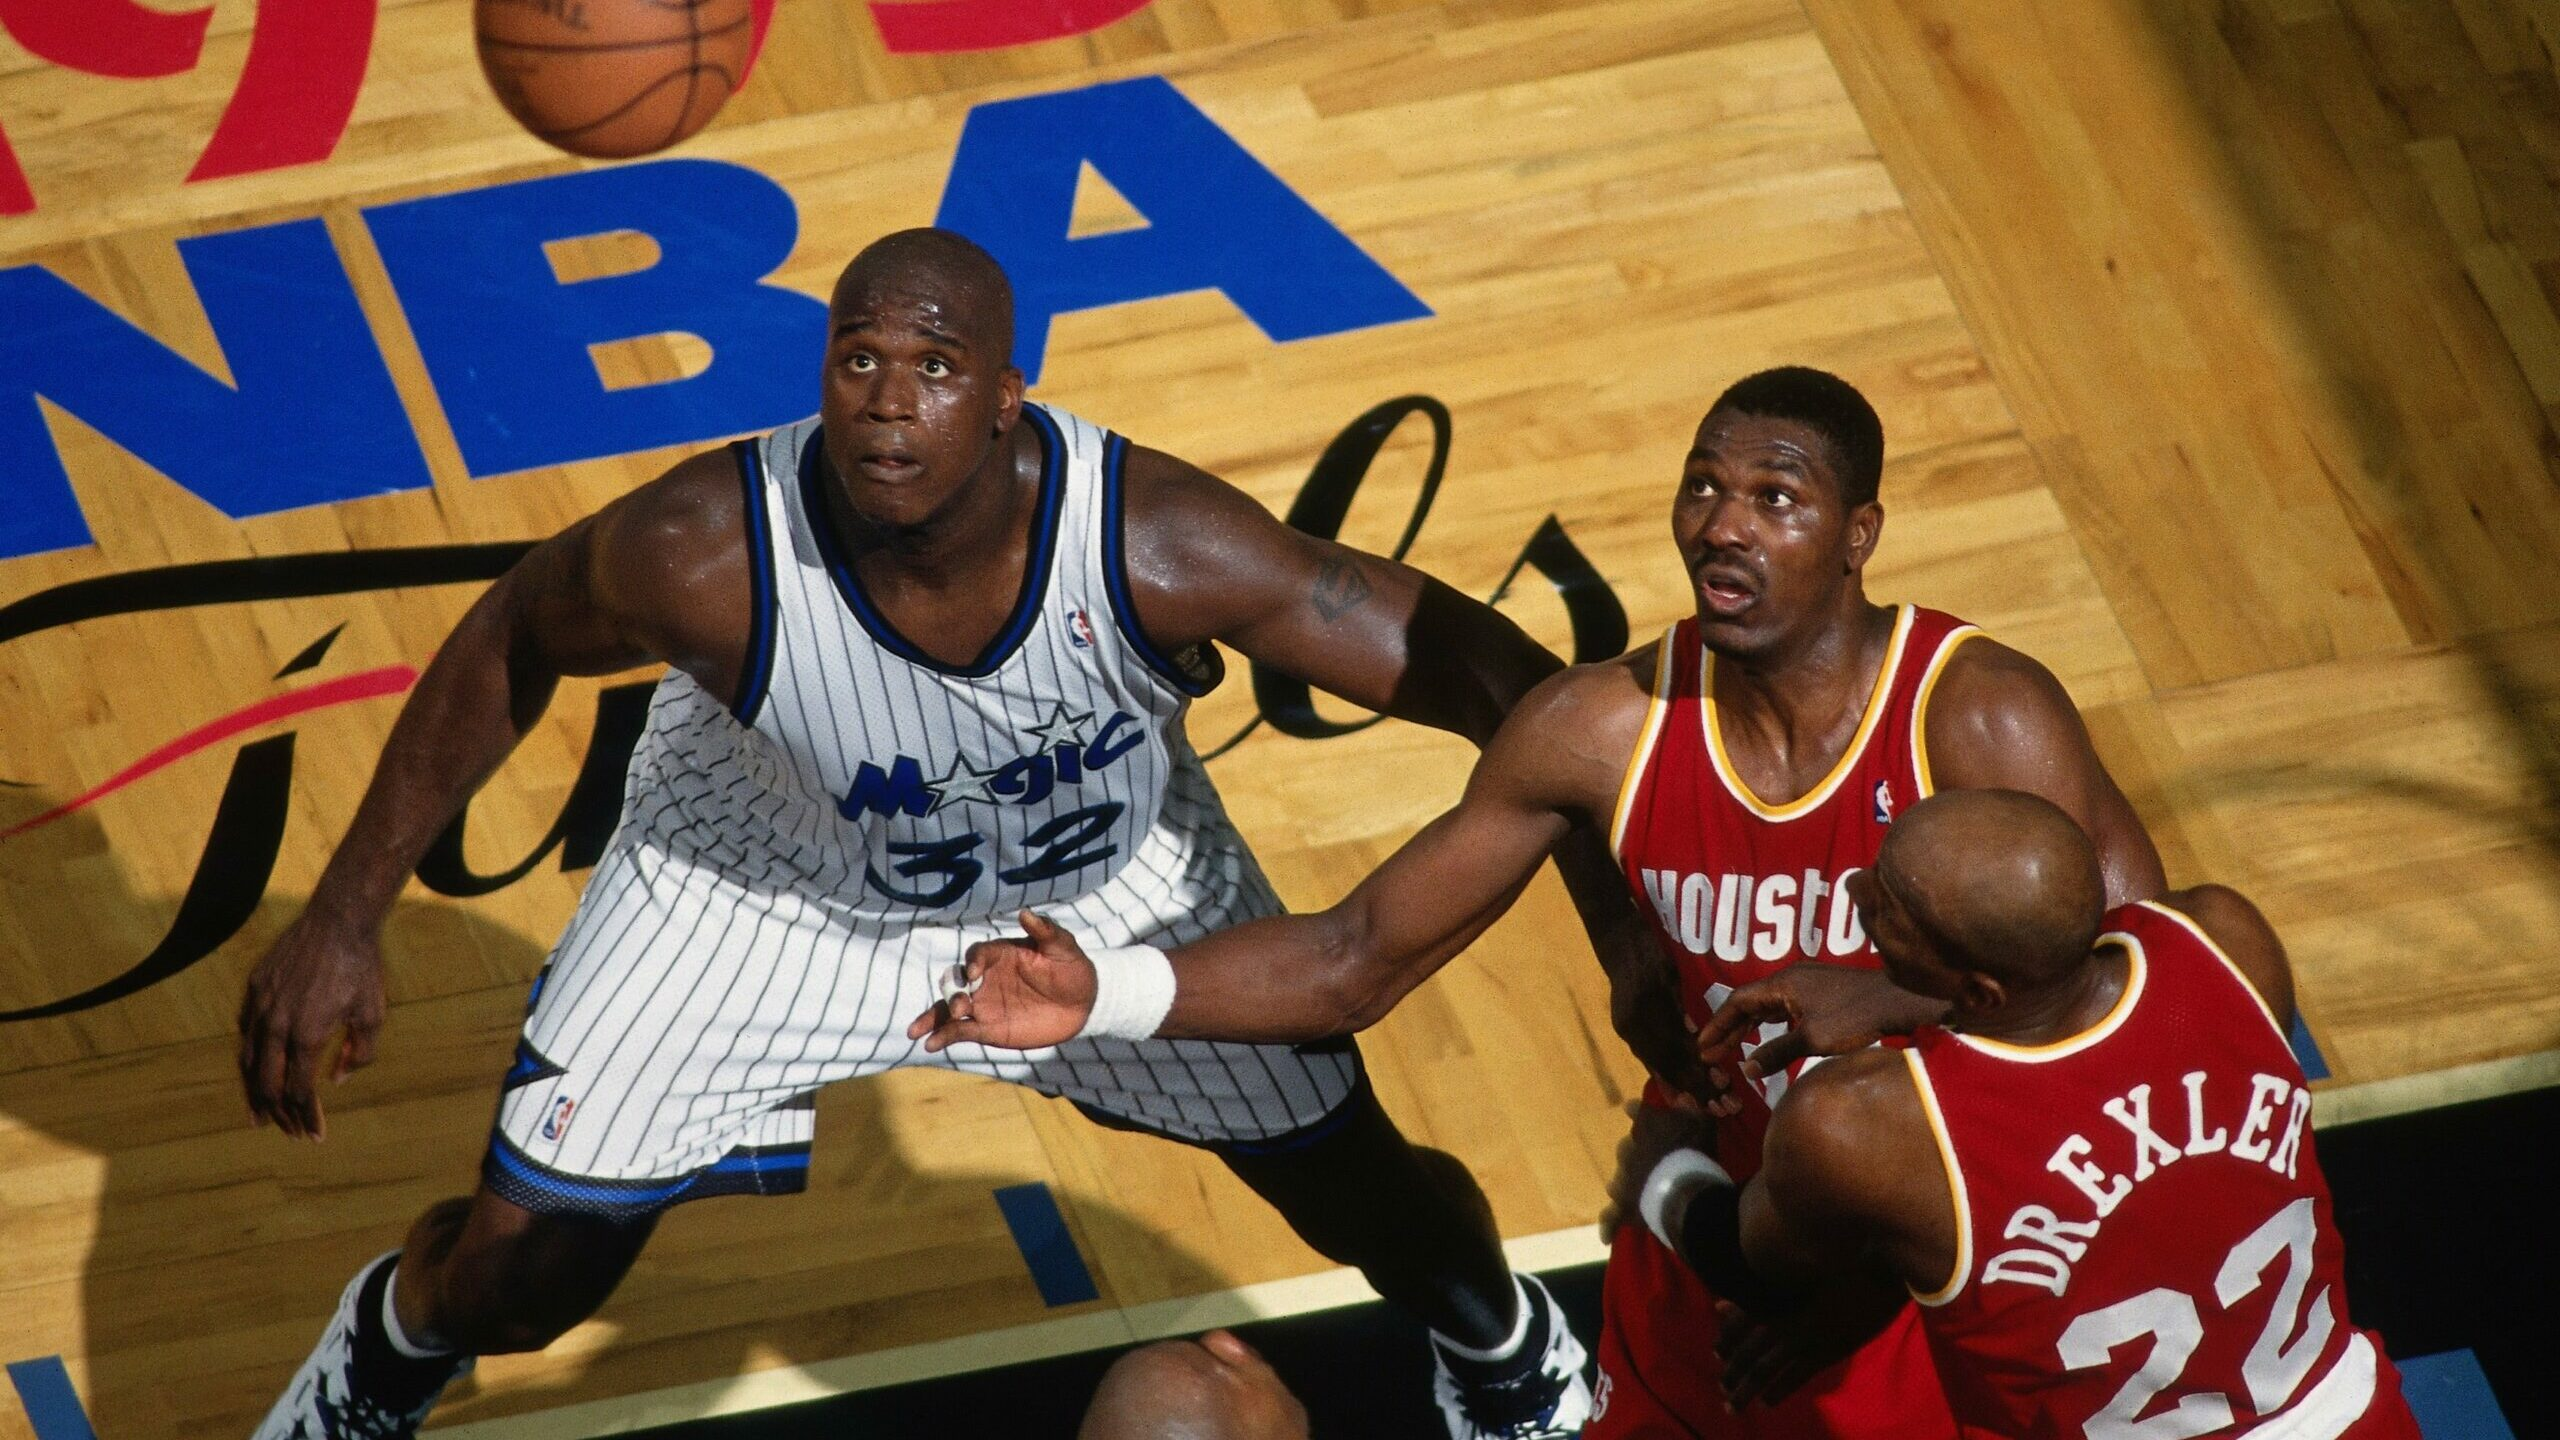 Legends profiles: The NBA's all-time greatest players